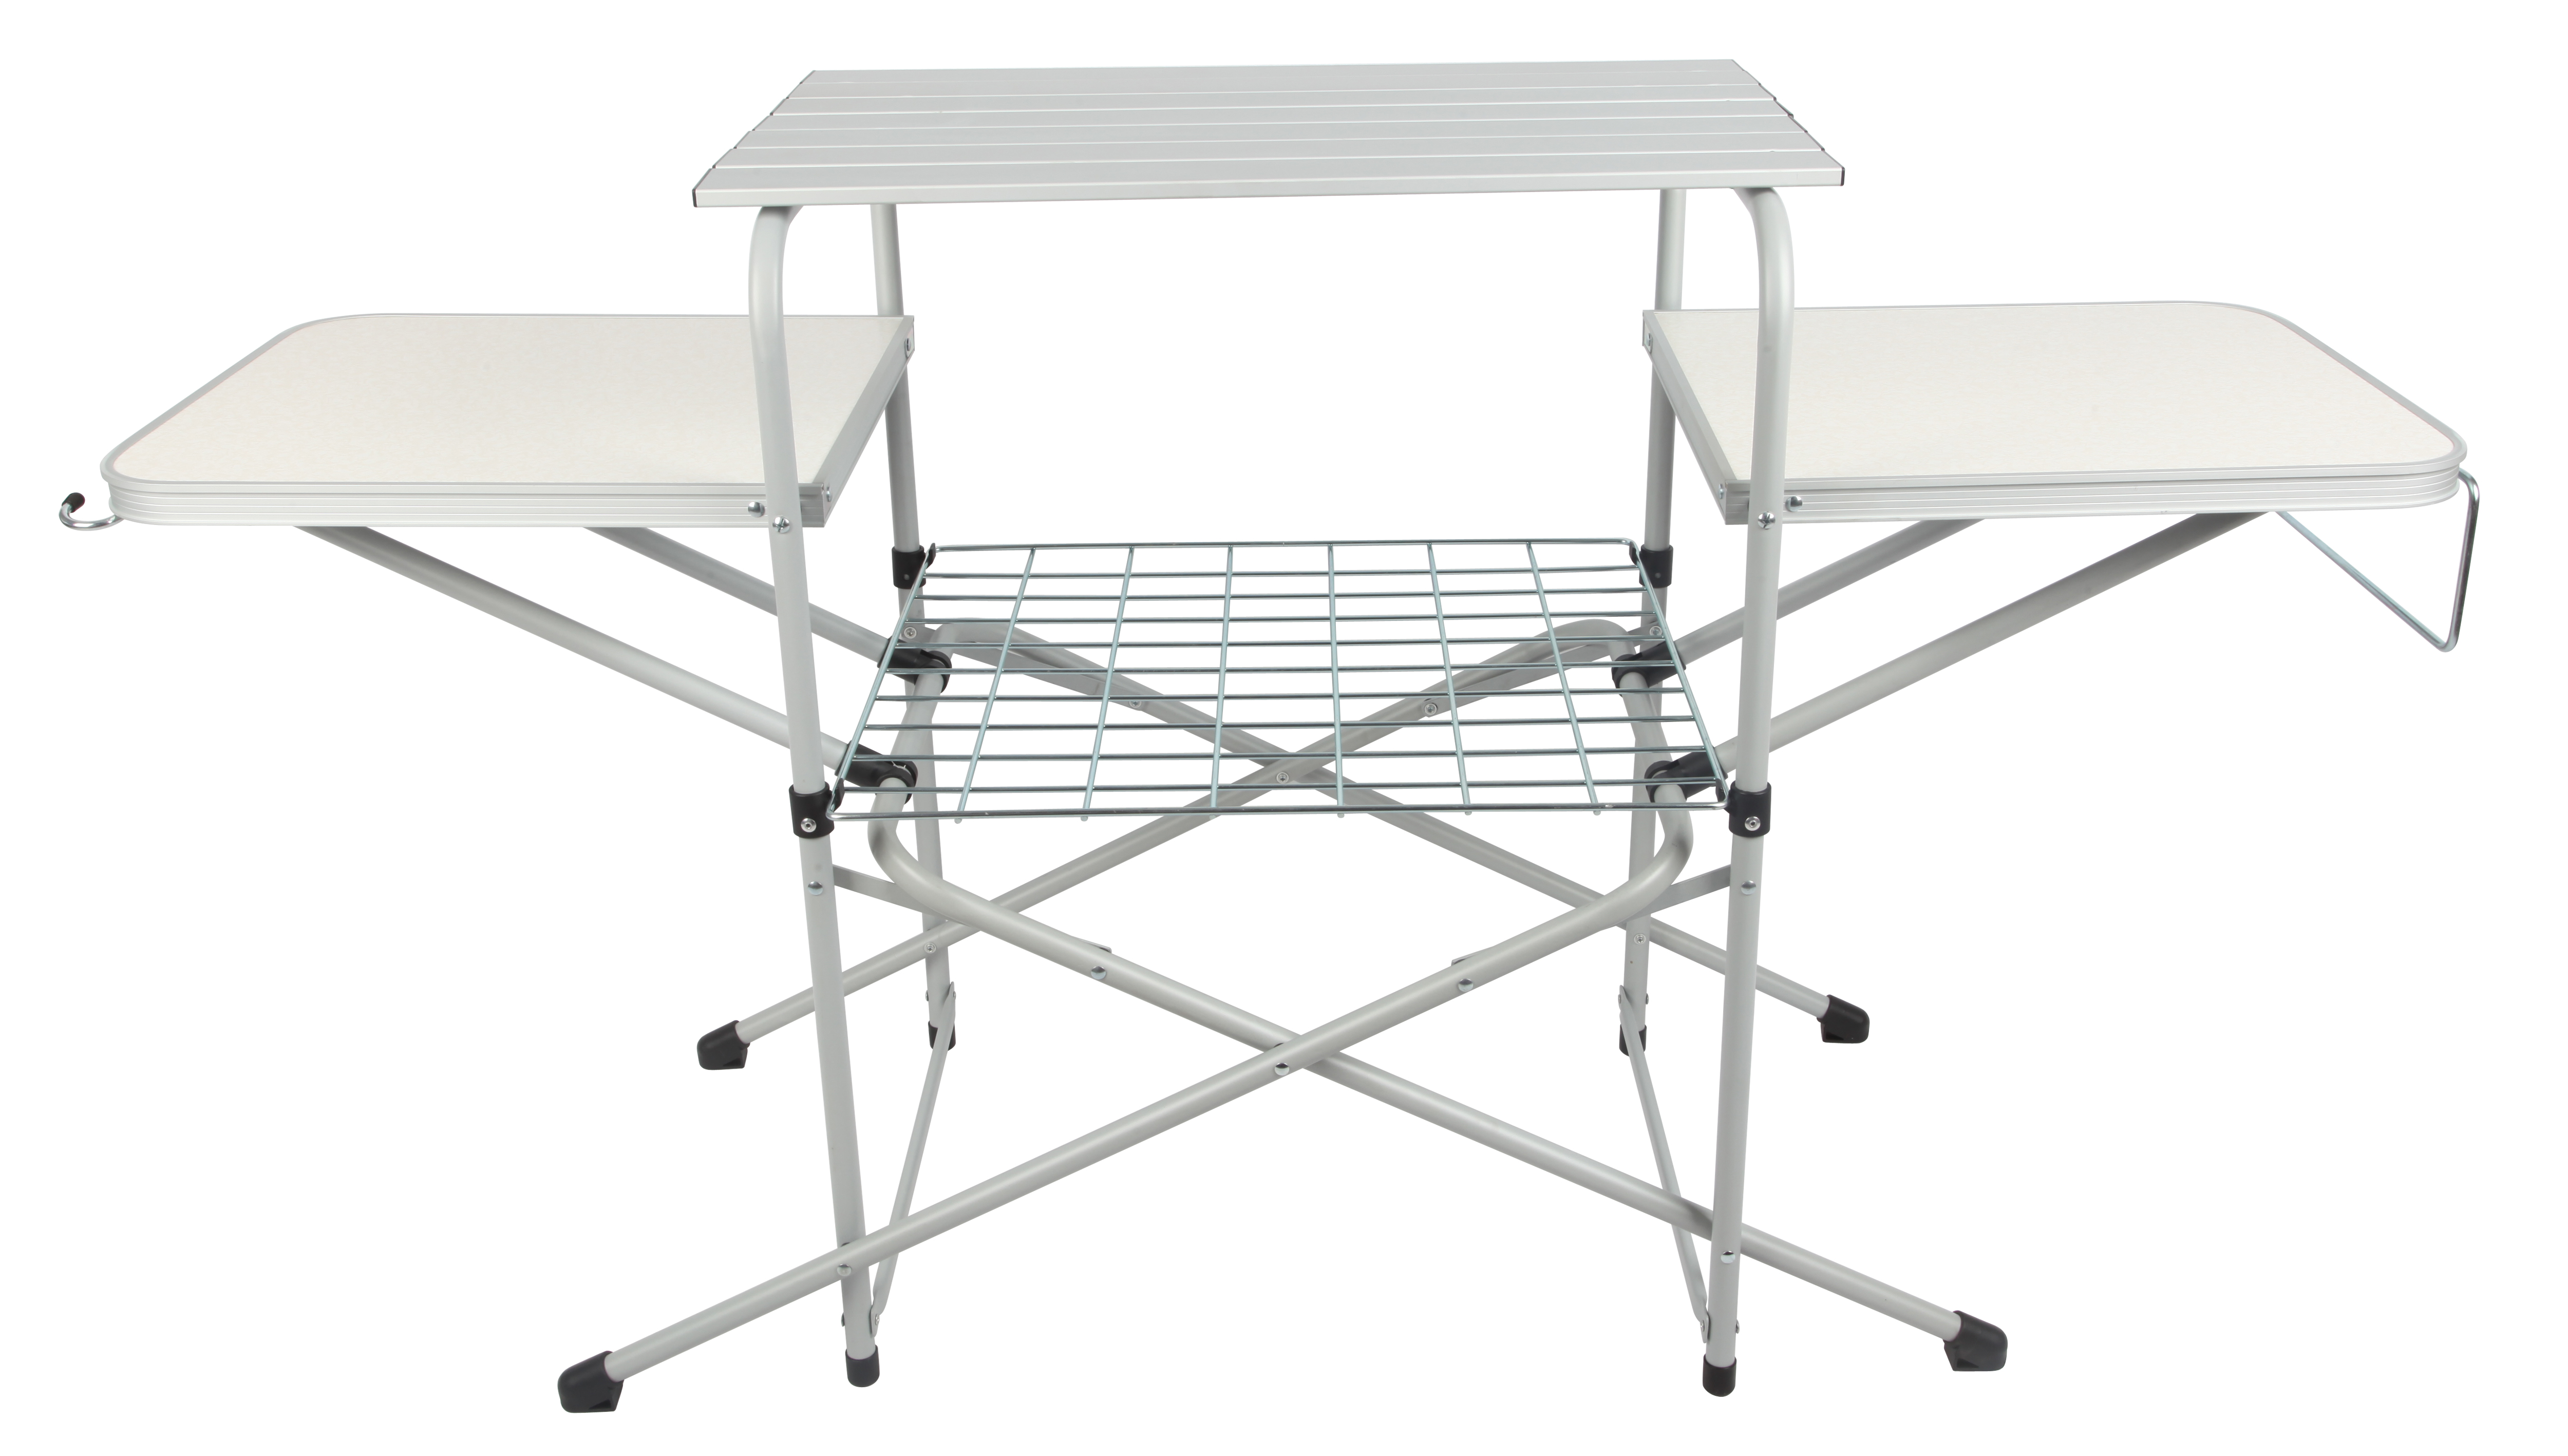 Ozark Trail Camping Outdoor Use Kitchen Cooking Stand - Walmart.com